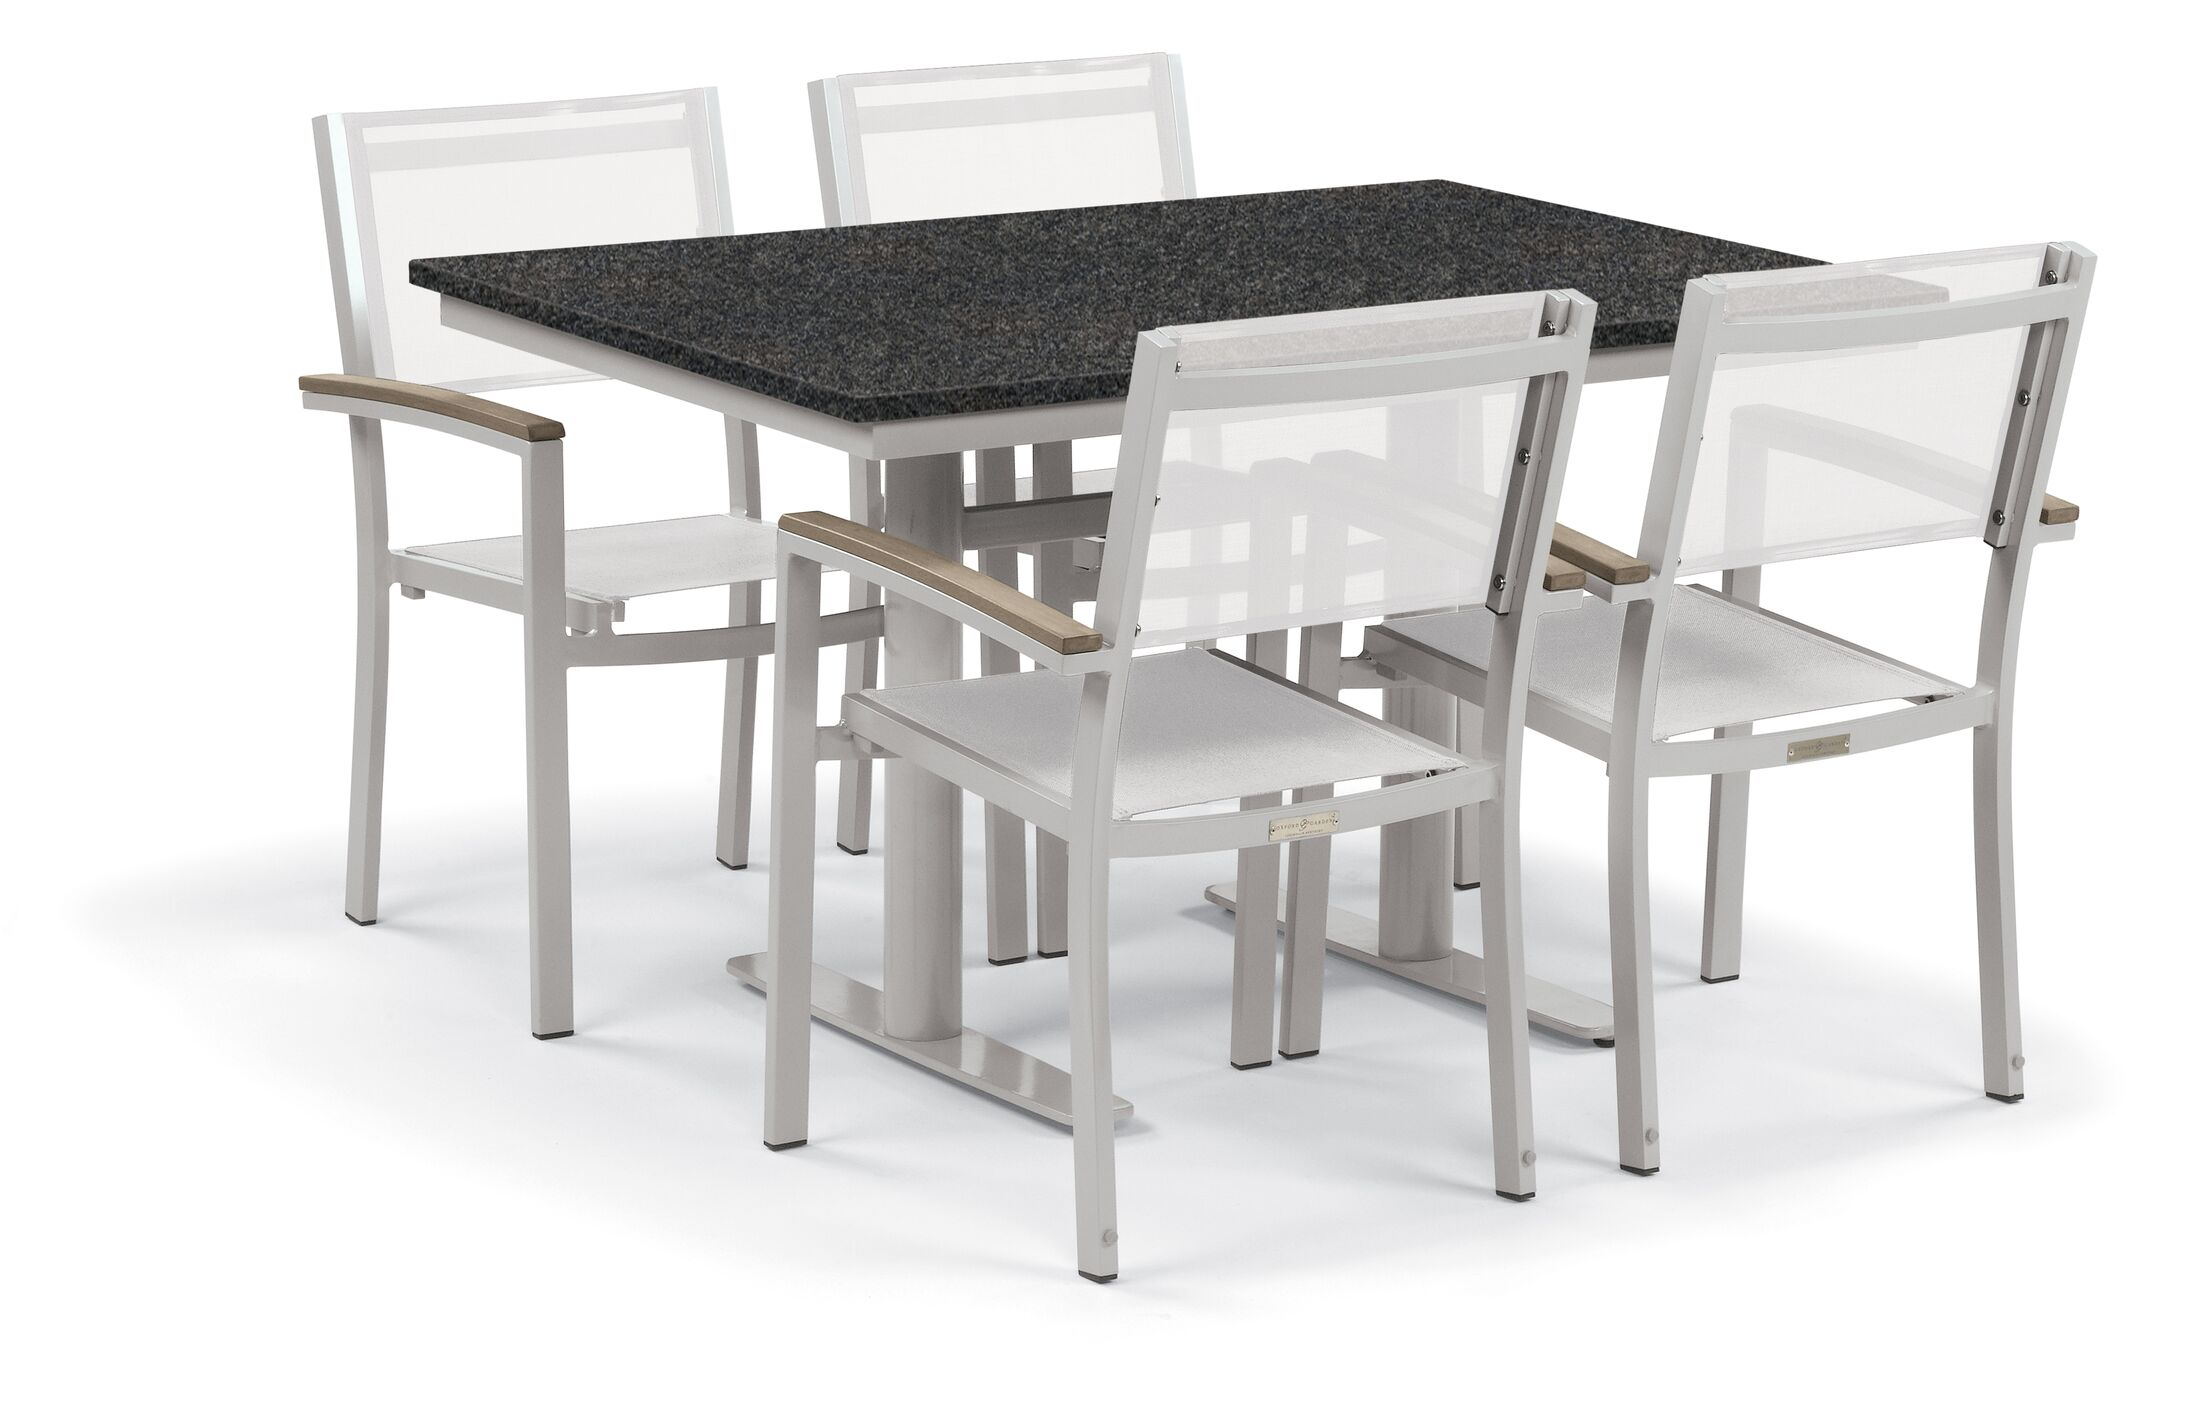 Farmington 5 Piece Teak Dining Set Finish: Ash White, Cushion Color: Go Green